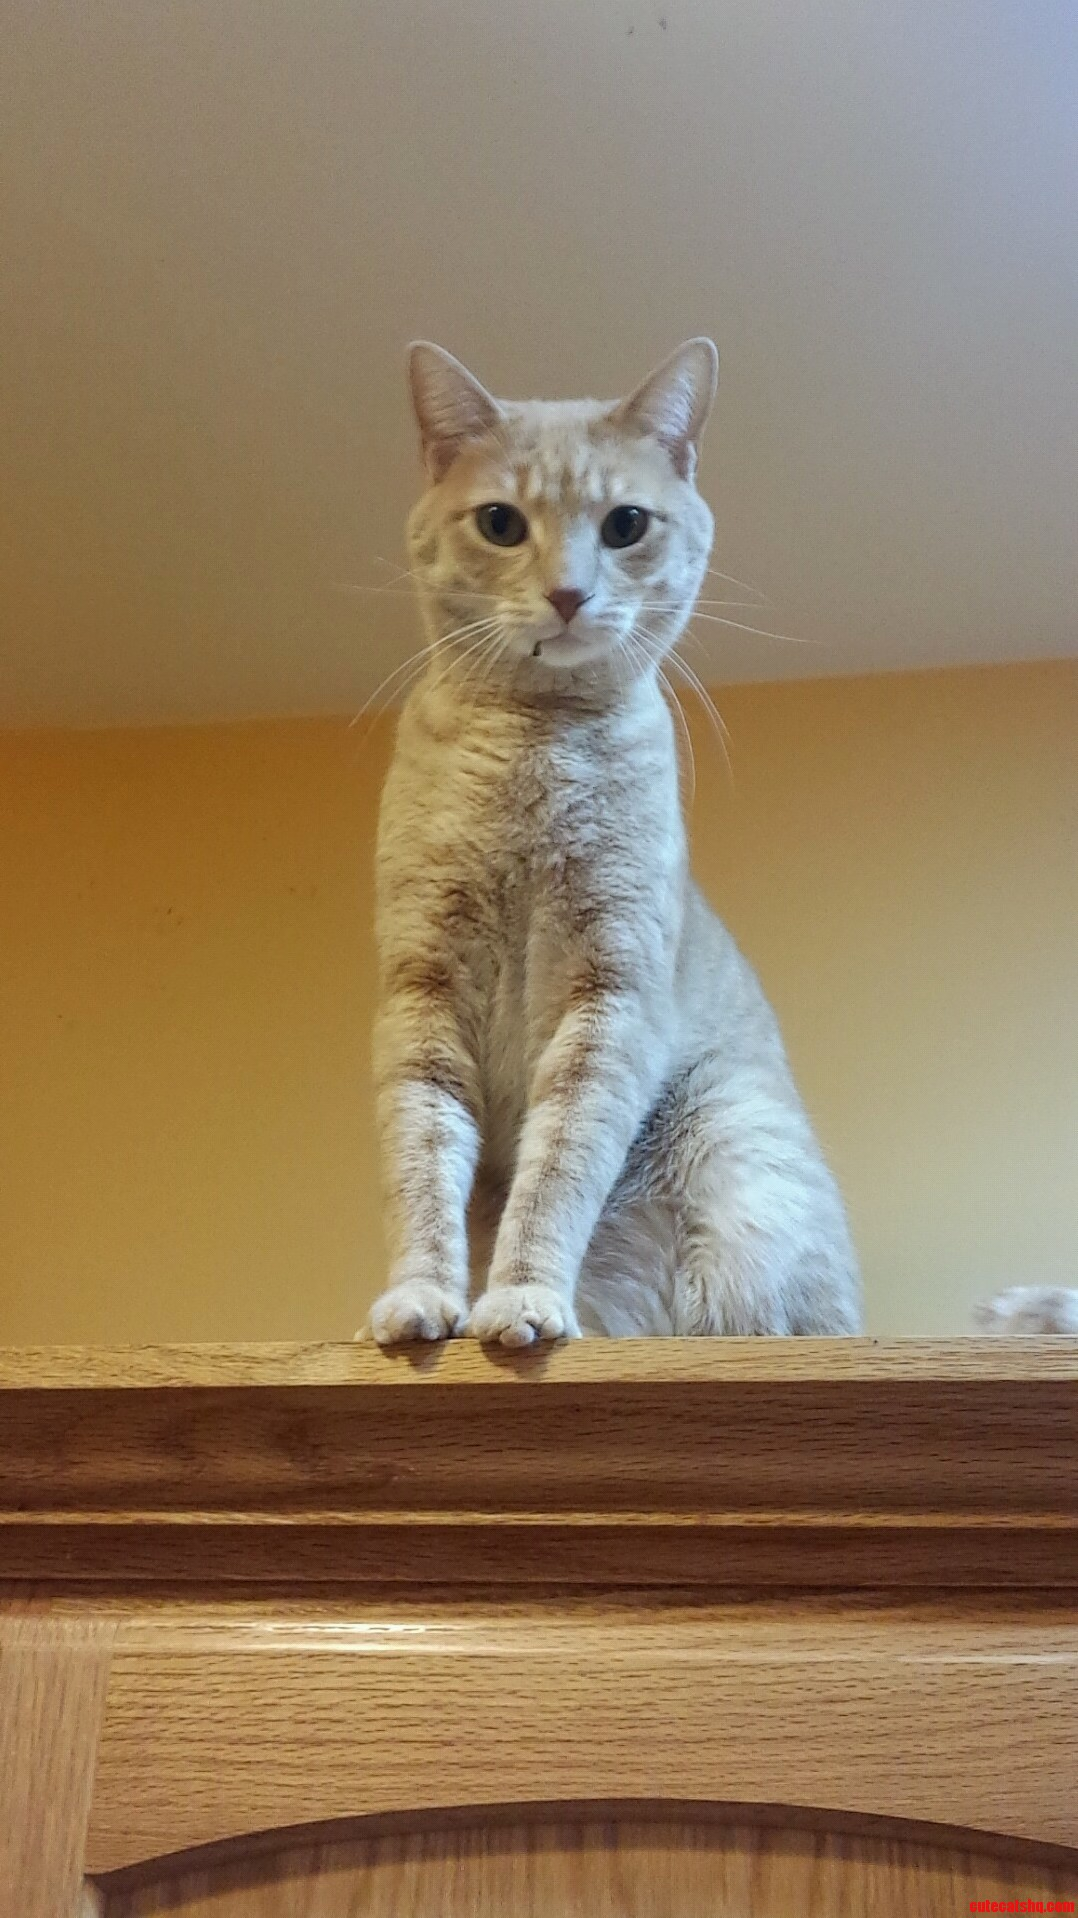 My Parents Cat Likes To Climb On Top Of The Kitchen Cabinets. Meet Lincoln.